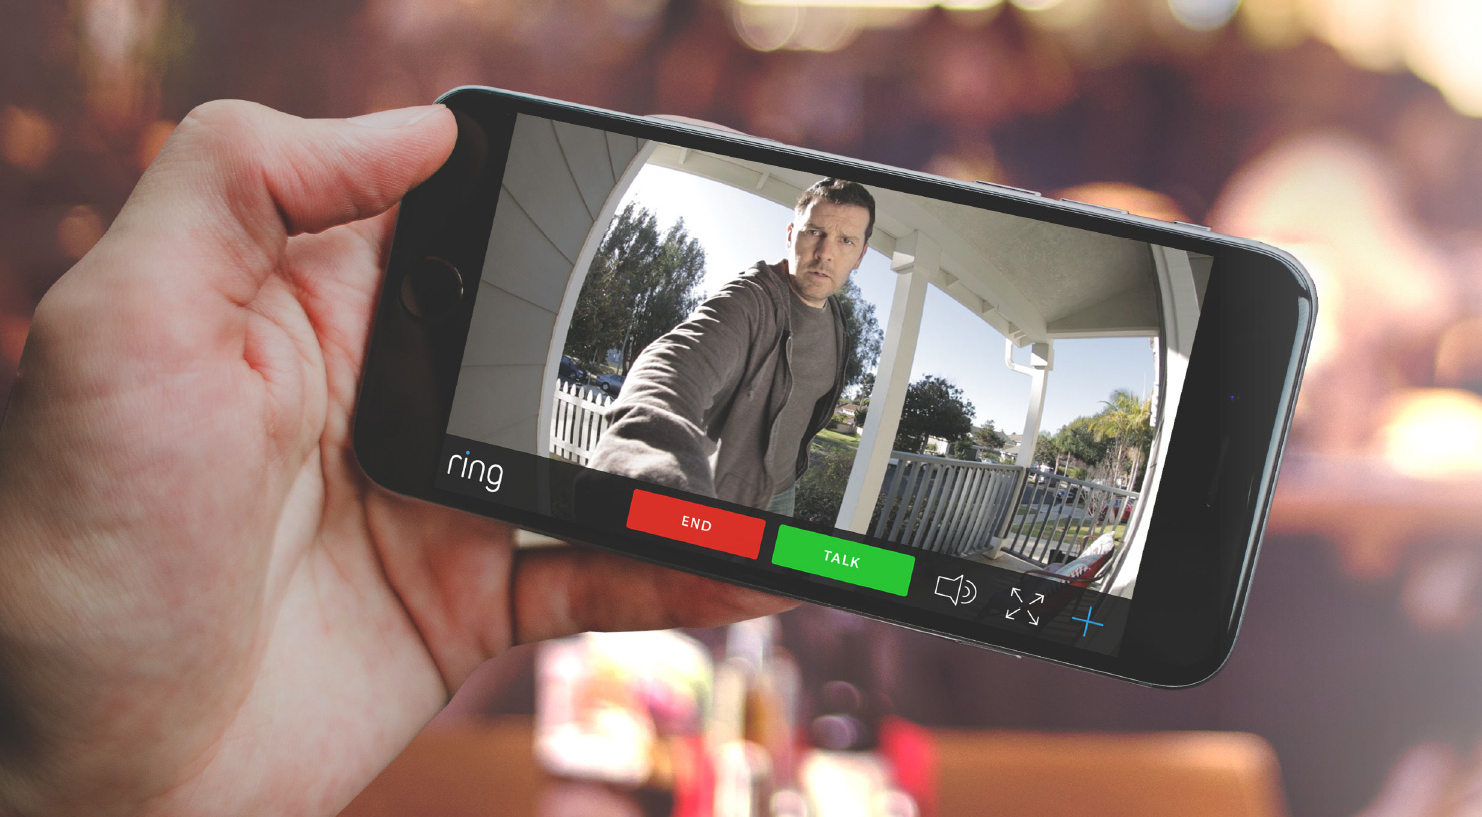 Photo of cellphone view live video on ring doorbell